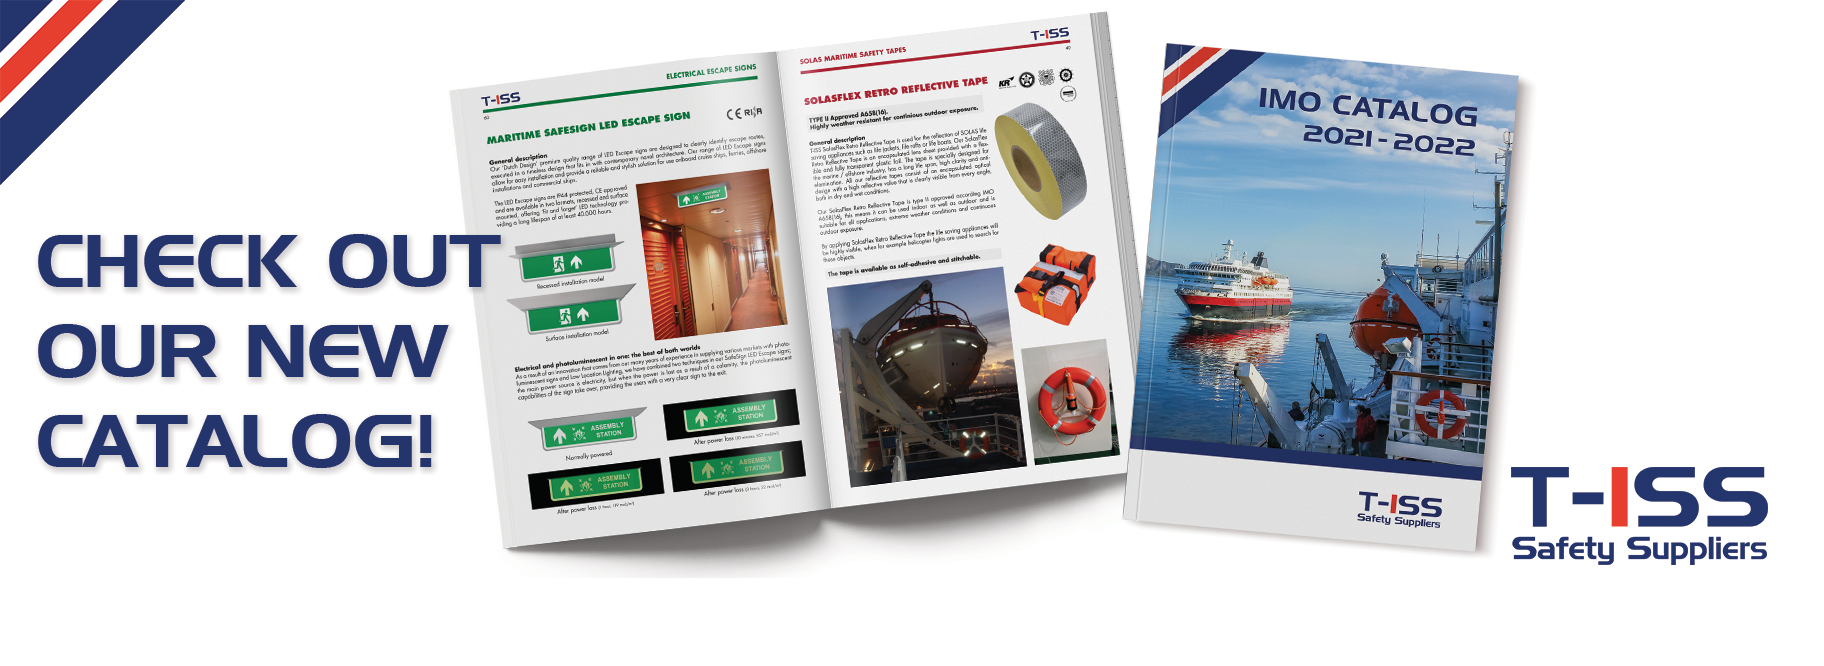 T-ISS IMO Safety Catalog 2021-2022